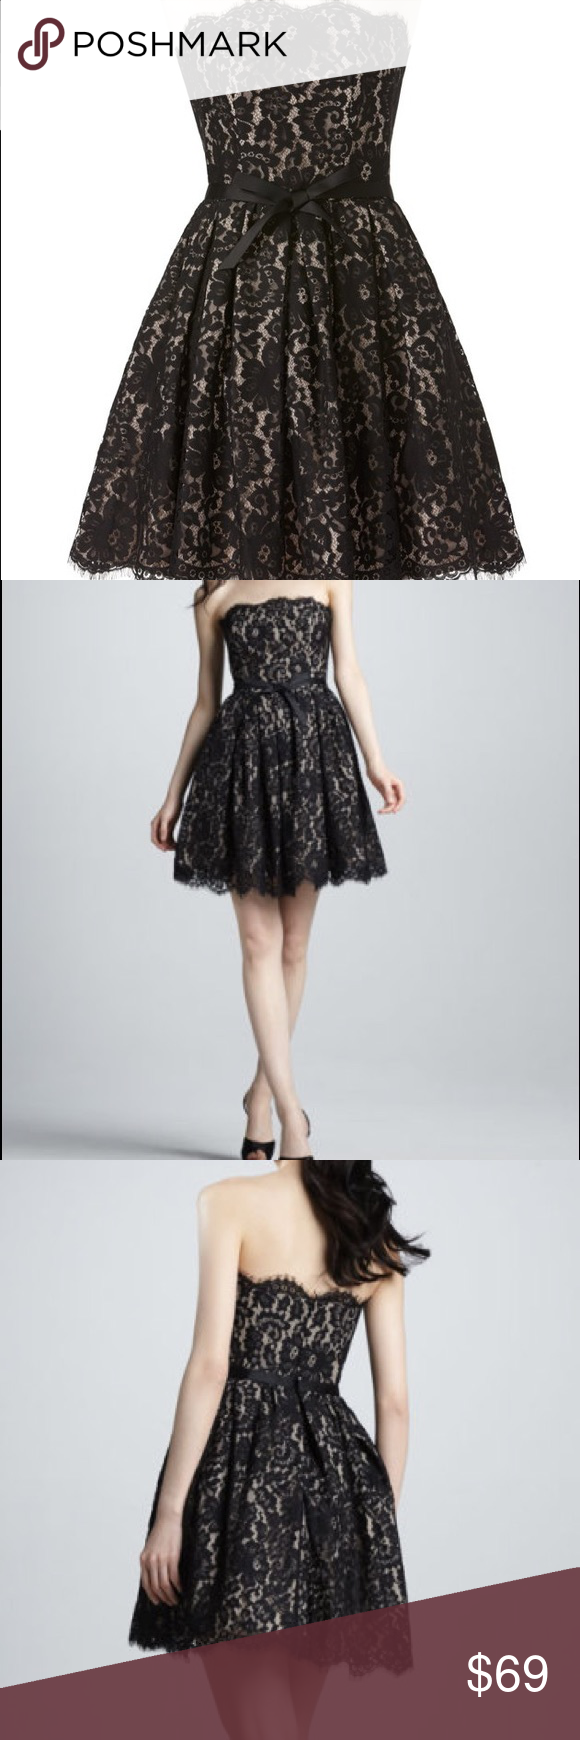 Narcisco Rodriguez Lace Strapless Cocktail Dress Strapless Cocktail Dresses Cocktail Dress Lace Target Dress [ 1740 x 580 Pixel ]